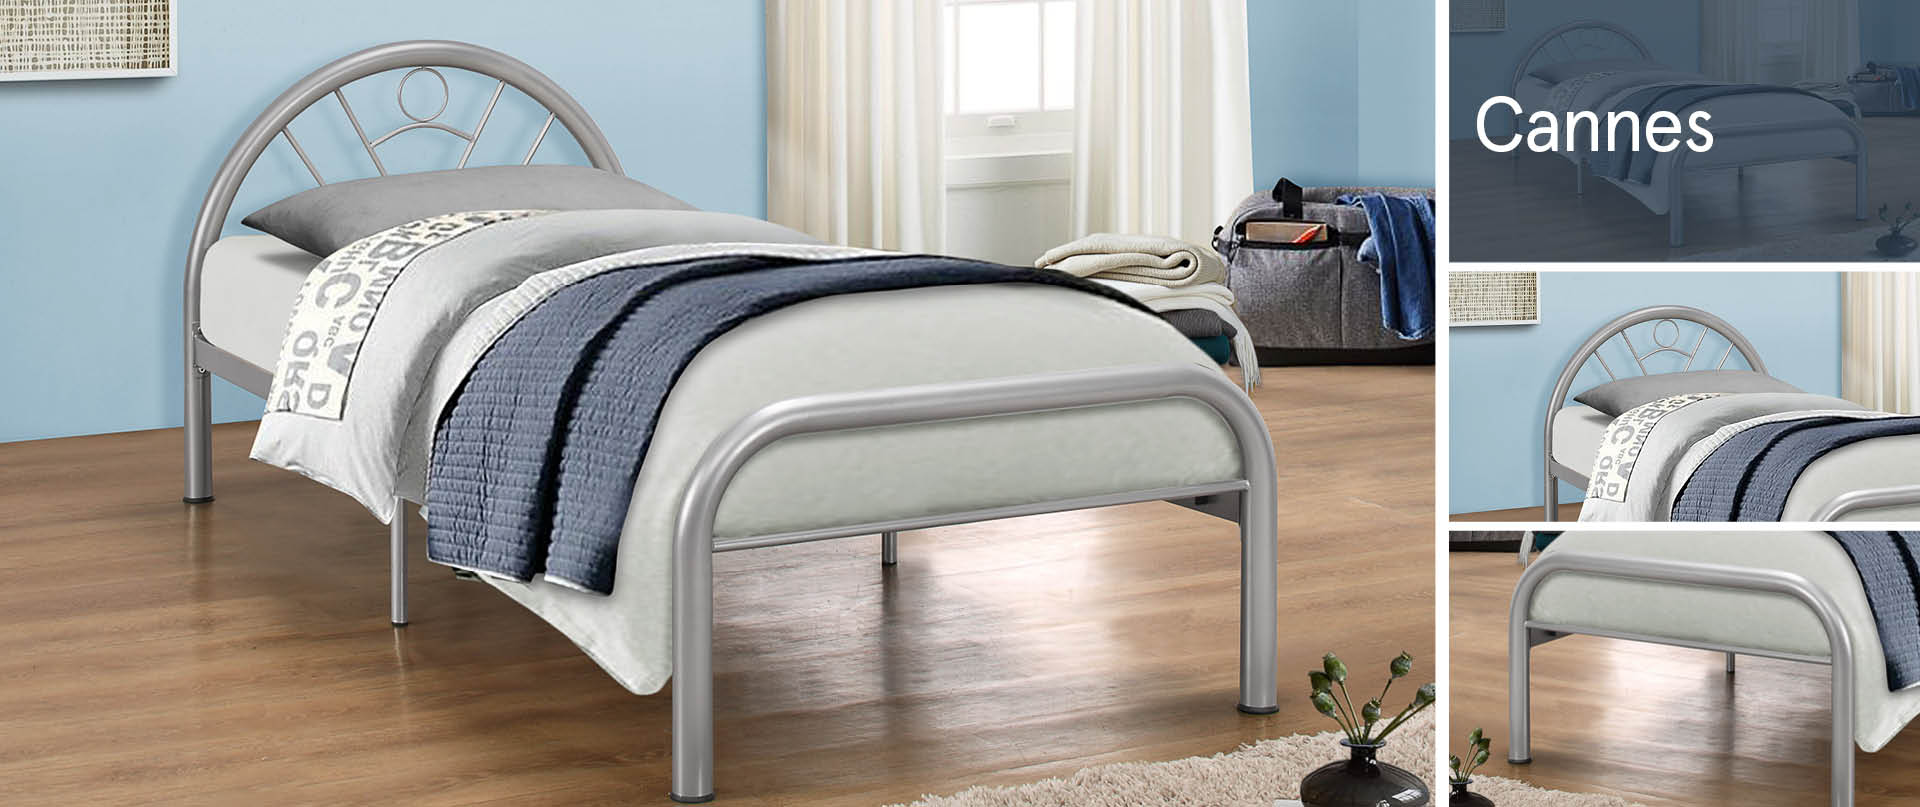 Cannes Bedstead Ranges